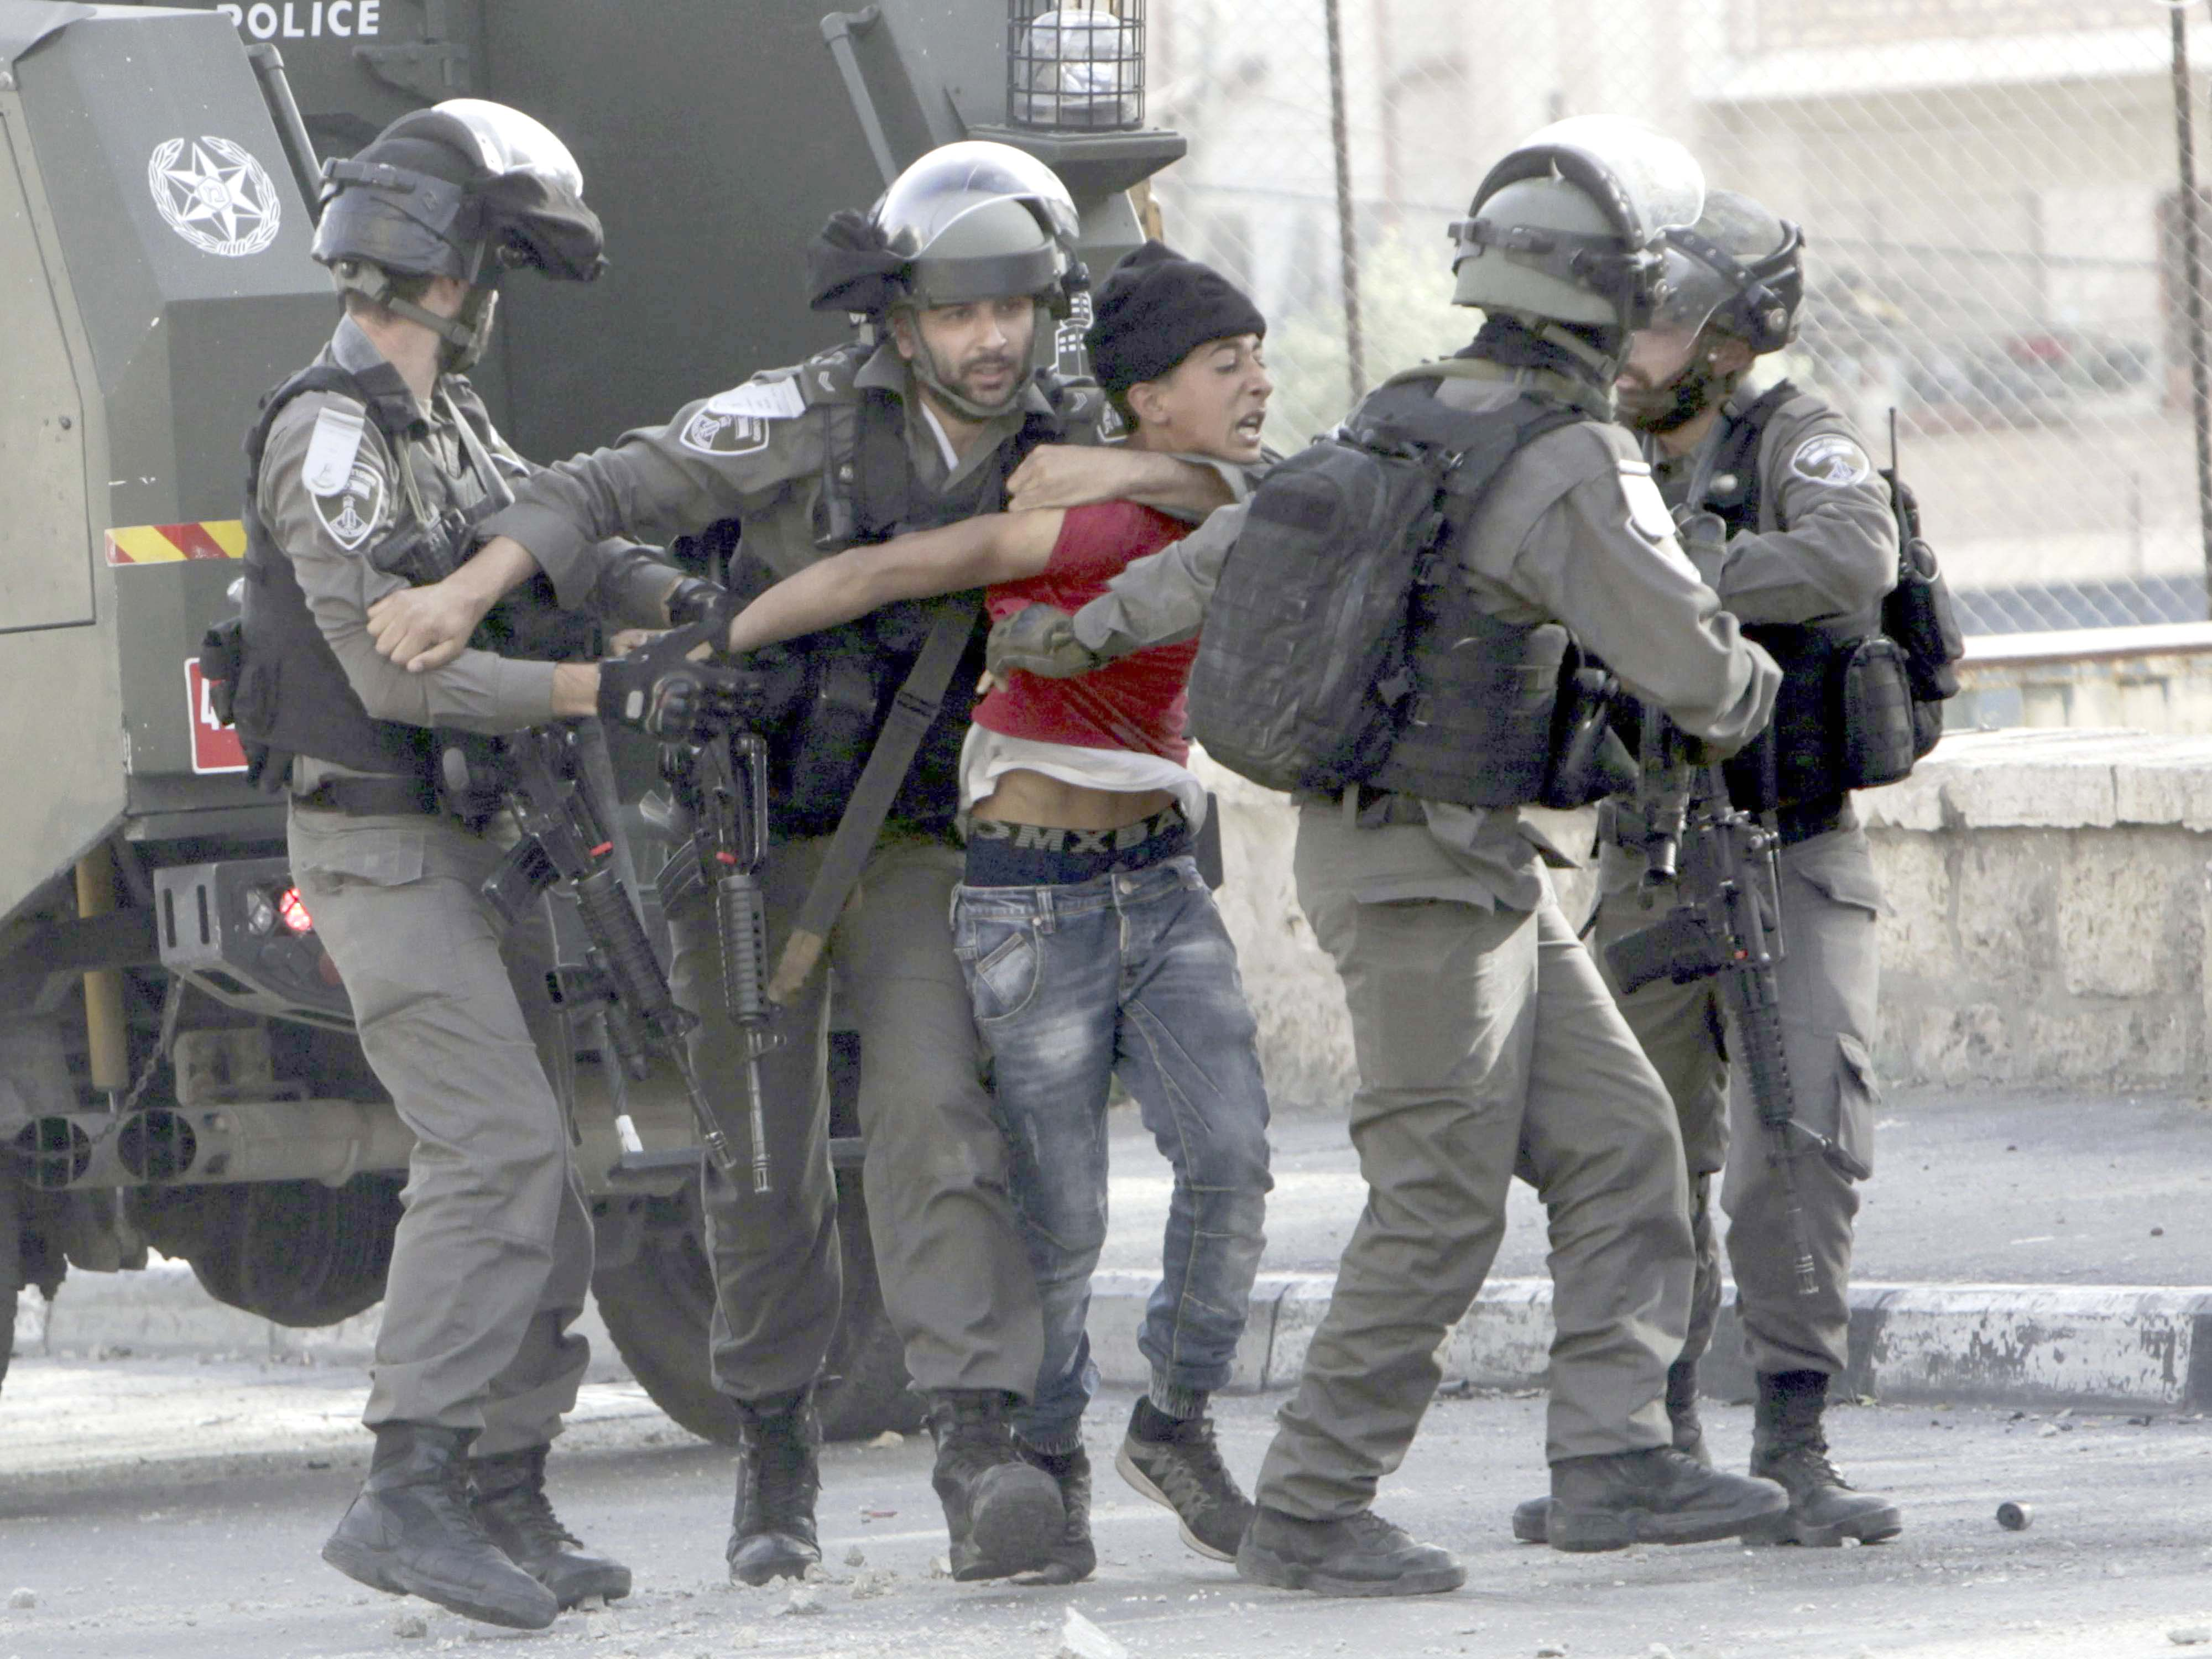 Israeli police arrest a young Palestinian during clashes in the West Bank city of Bethlehem, last April. (AP)